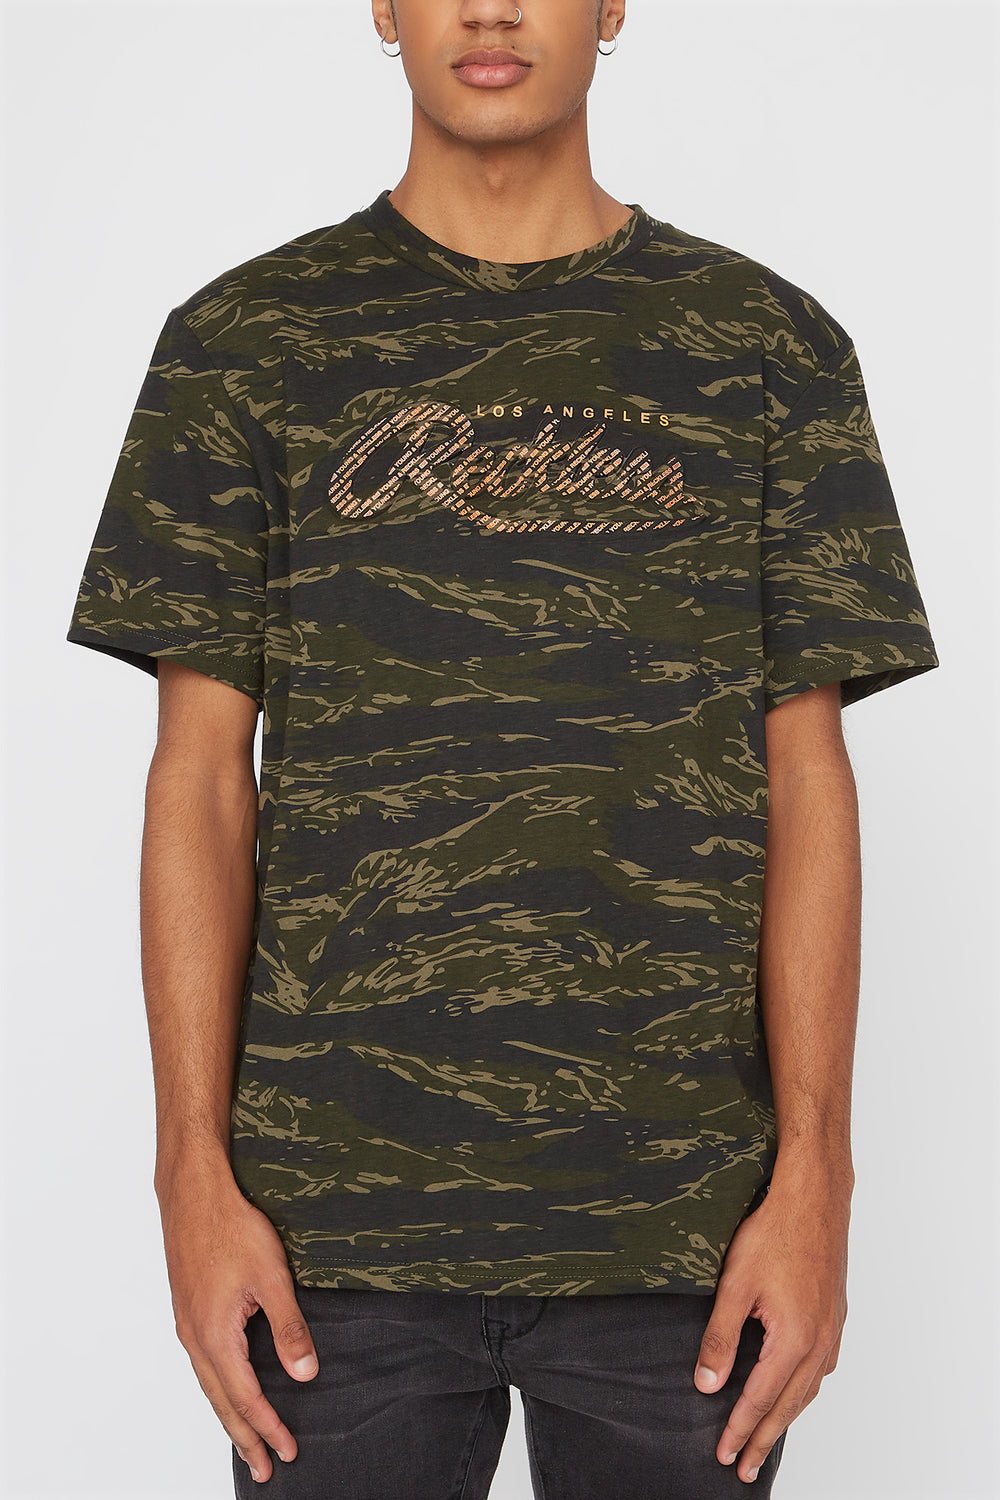 Young & Reckless Mens Camo & Neon T-Shirt Camouflage